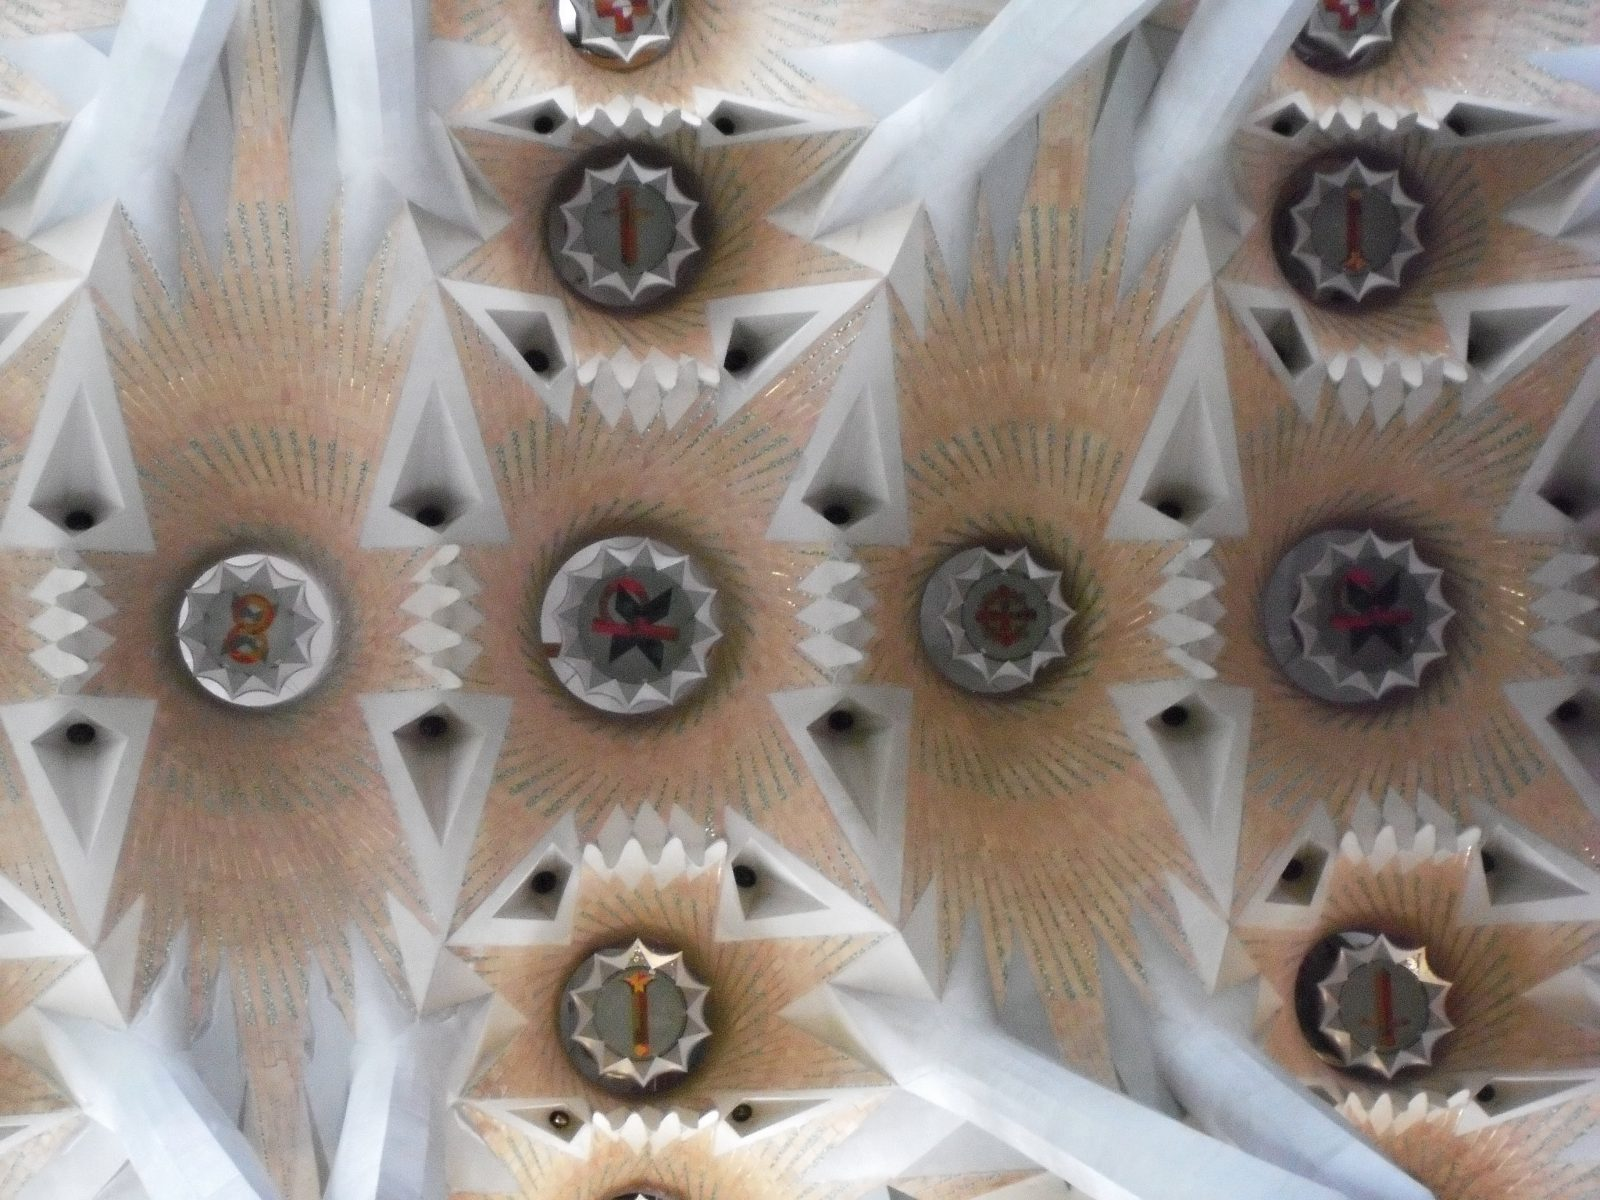 In Photos: Why Visiting The Inside of Sagrada Familia Is Worth It 1